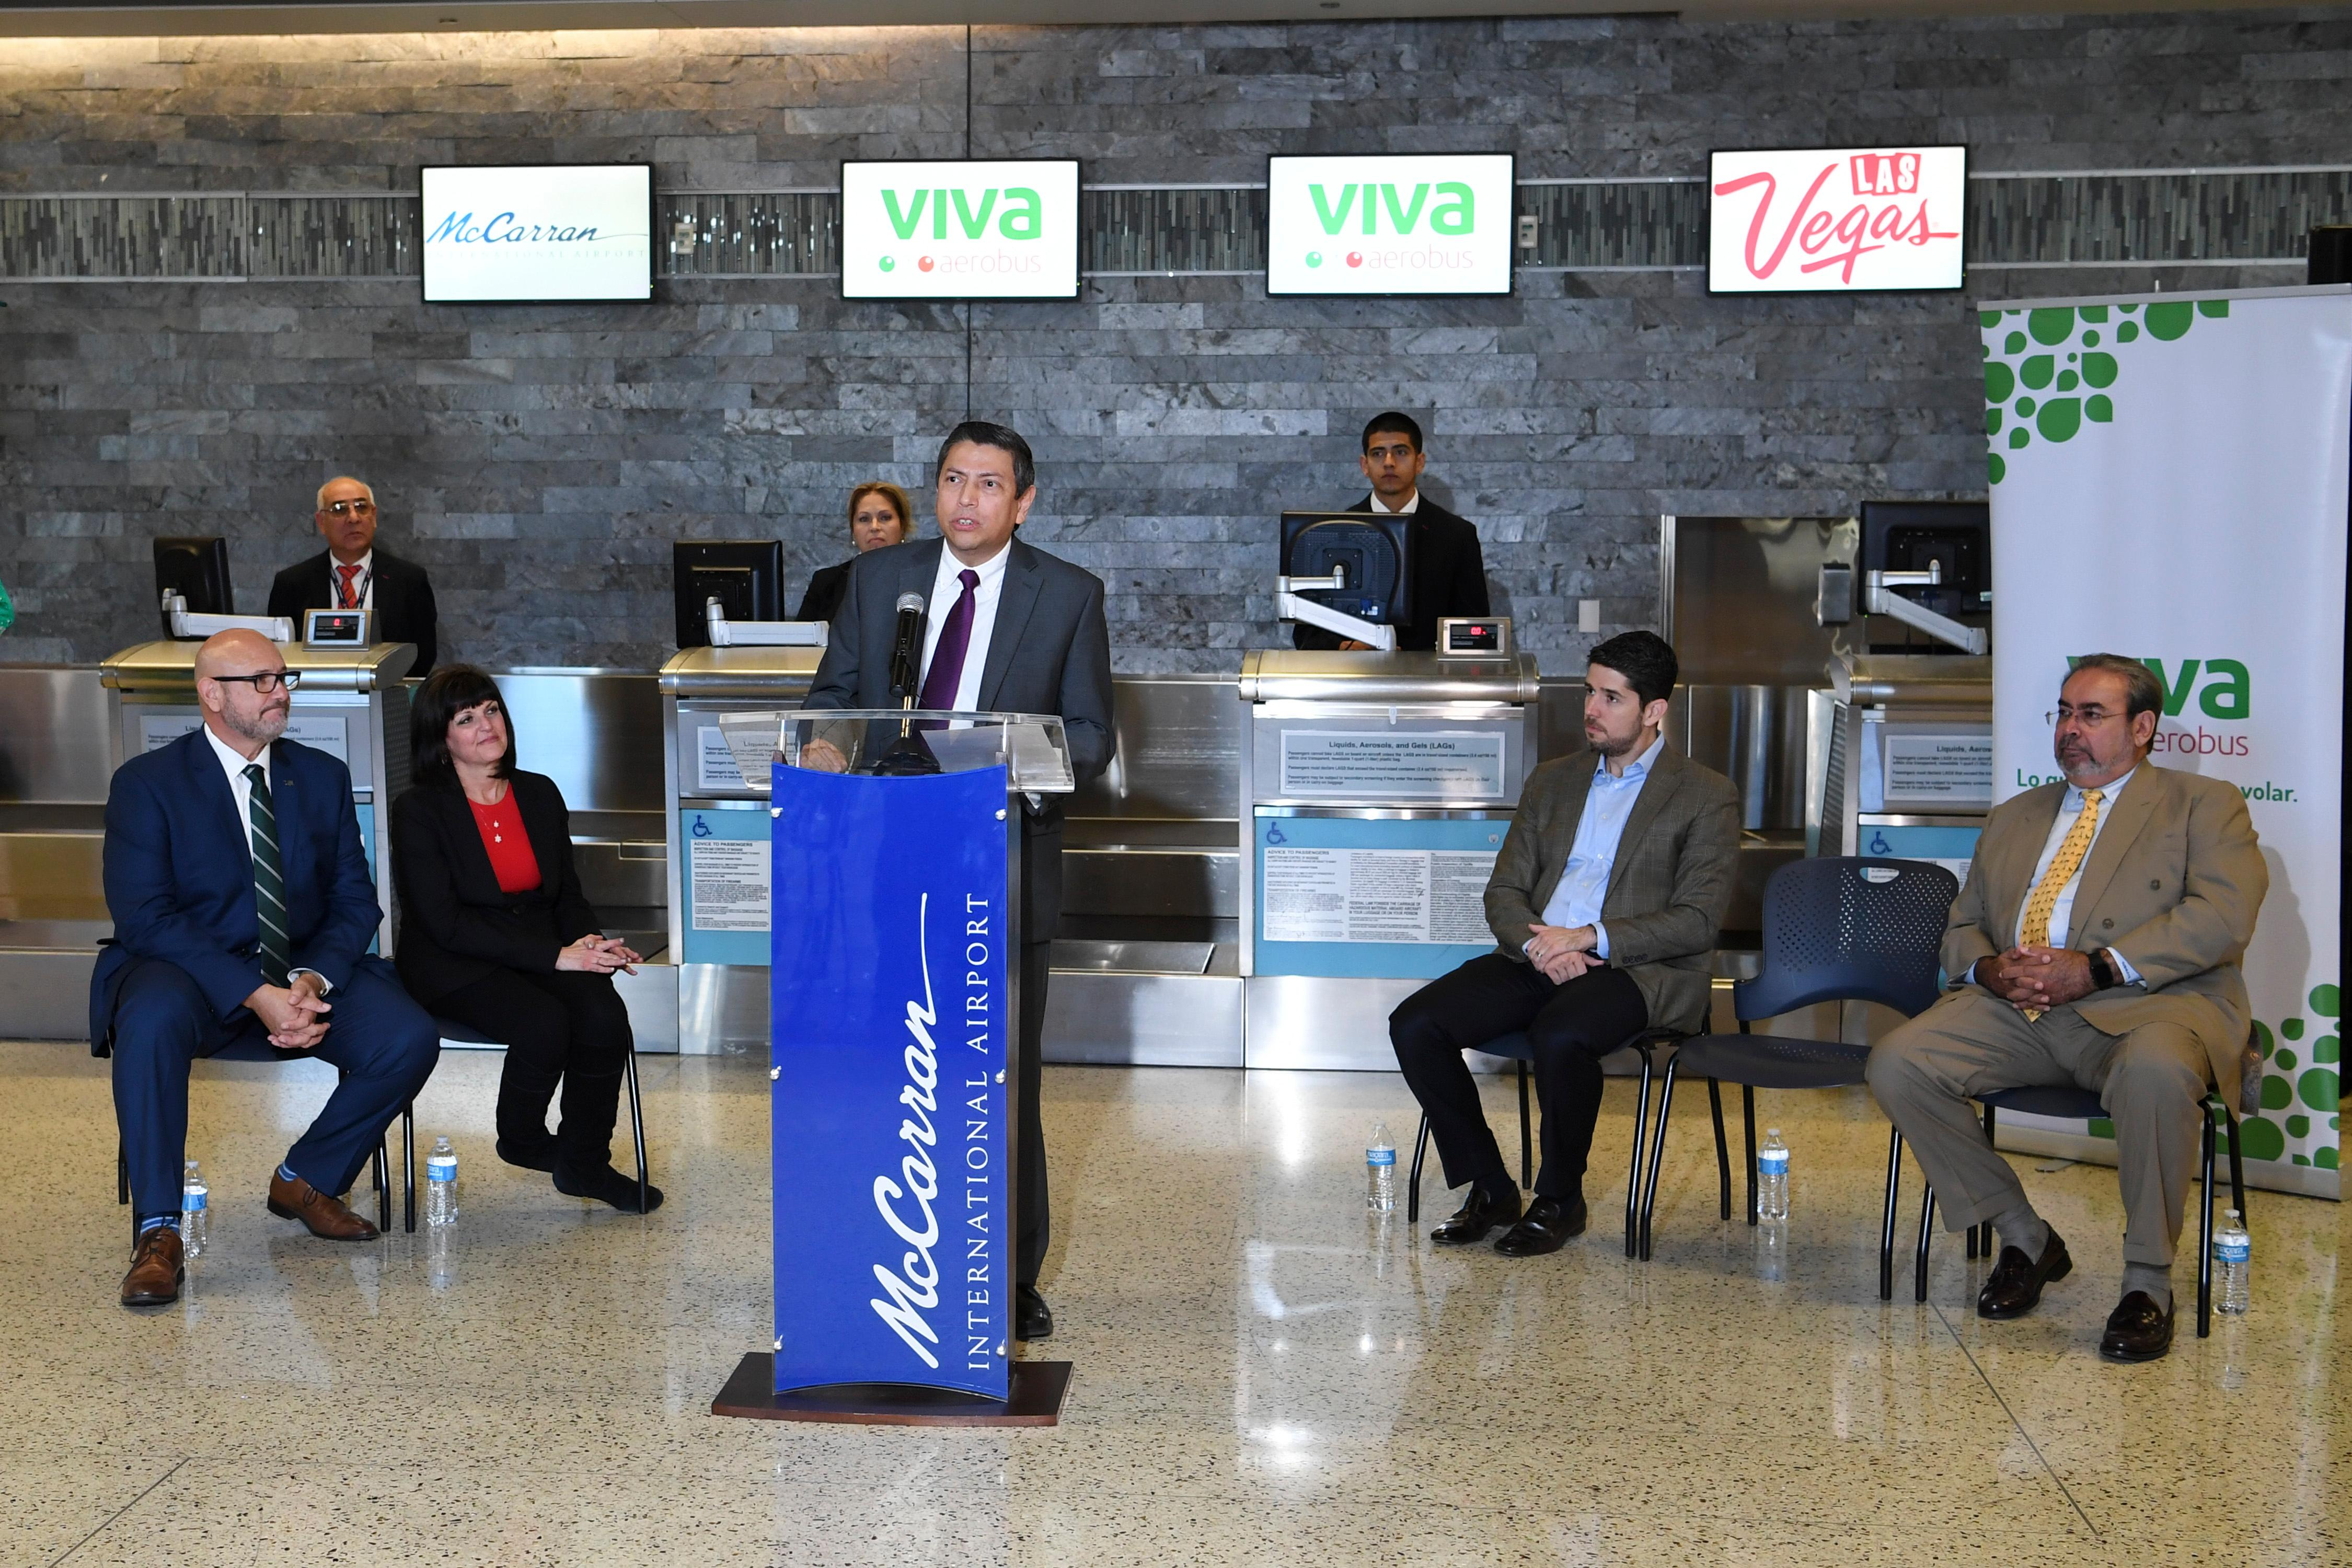 Consul General of Mexico Alejandro Madrigal speaks during a news conference at McCarran International Airport to announce new Viva Aerobus service between Las Vegas and Mexico City Friday, December 15, 2017. CREDIT: Sam Morris/Las Vegas News Bureau